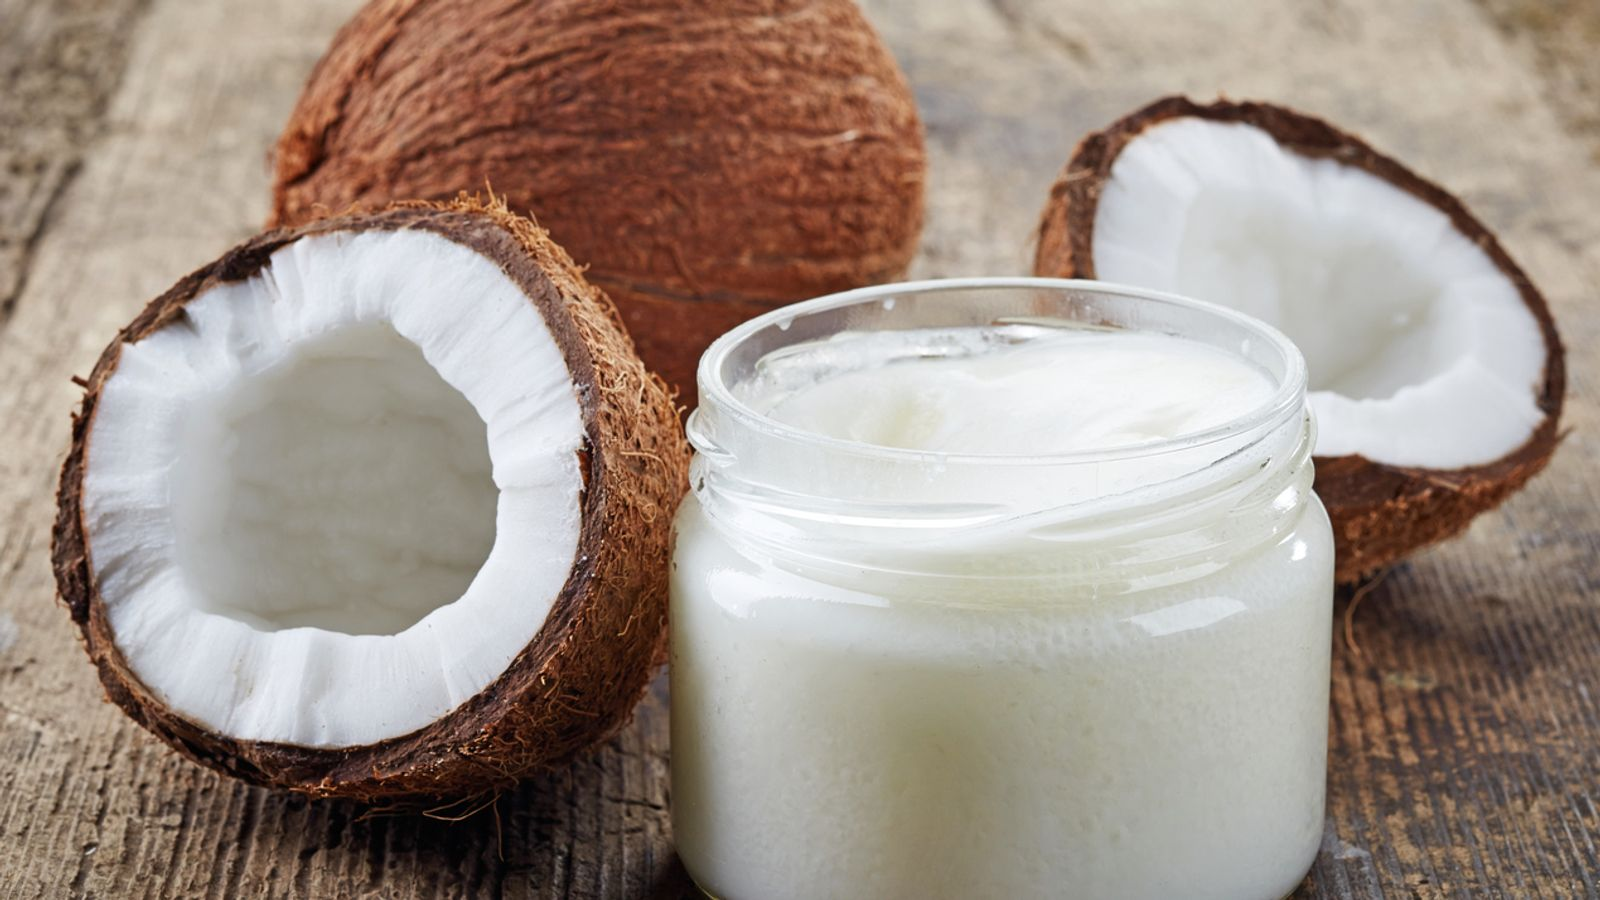 Coconut oil 'pure poison' says Harvard prof